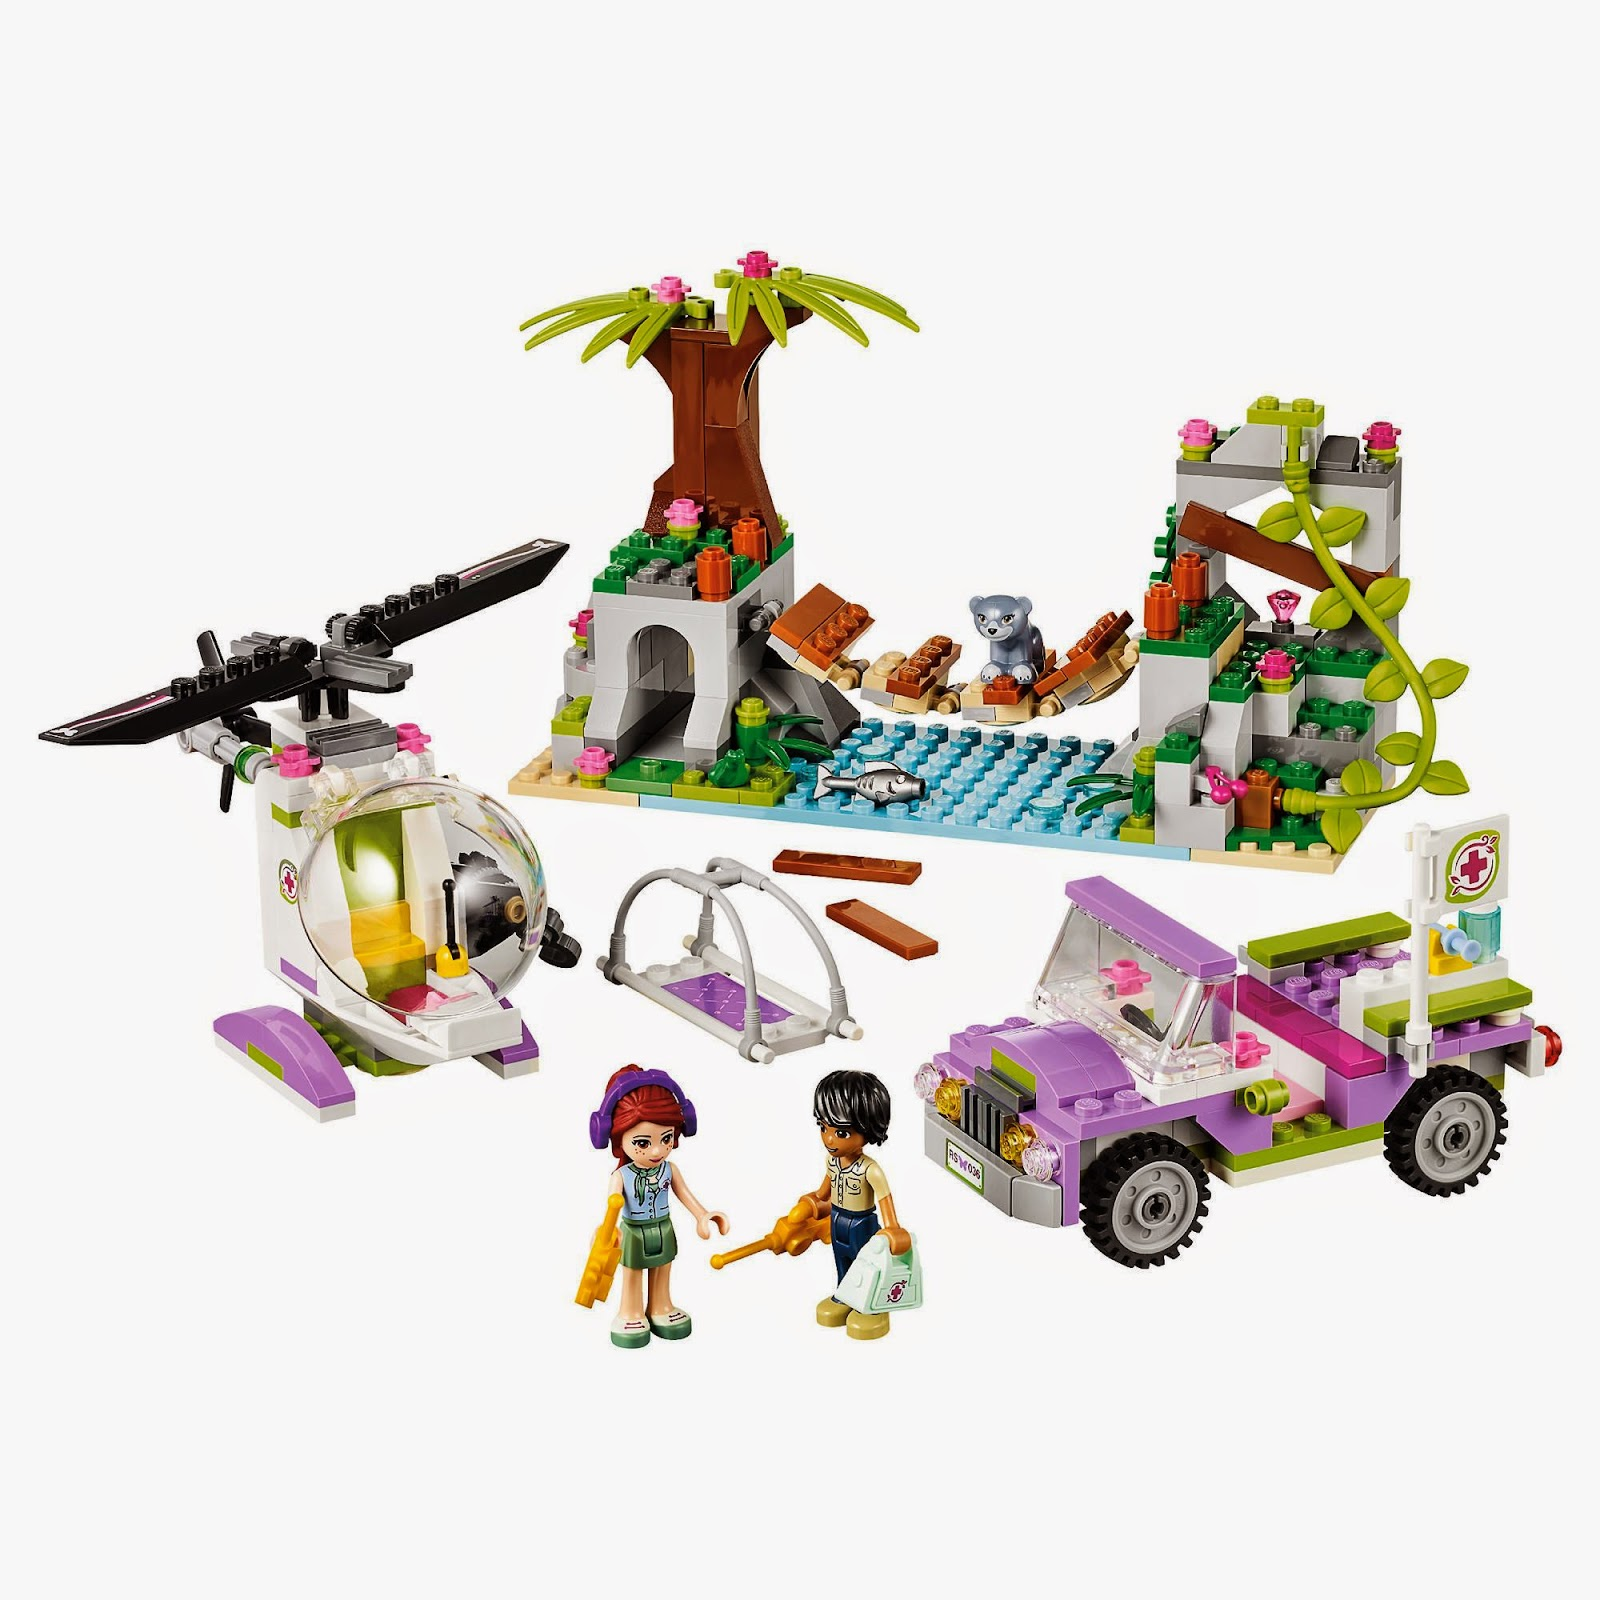 Lego Friends Inspire Girls Globally 2015 2014 Lego